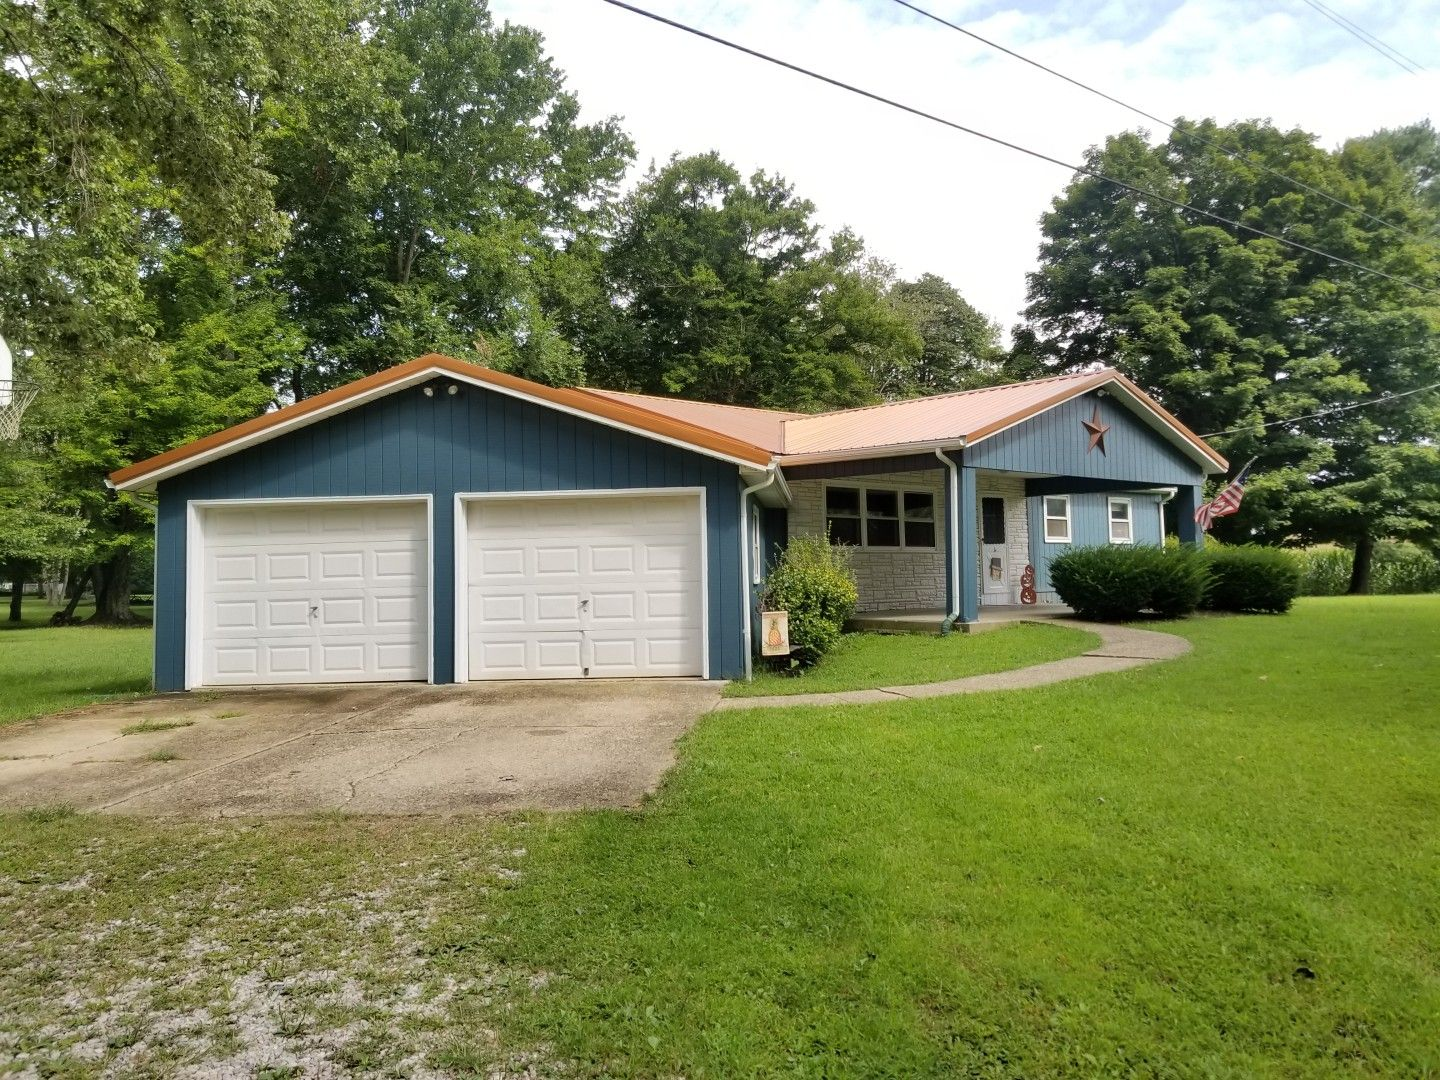 Best Blue House With Copper Metal Roof T1 11 Siding Copper 400 x 300